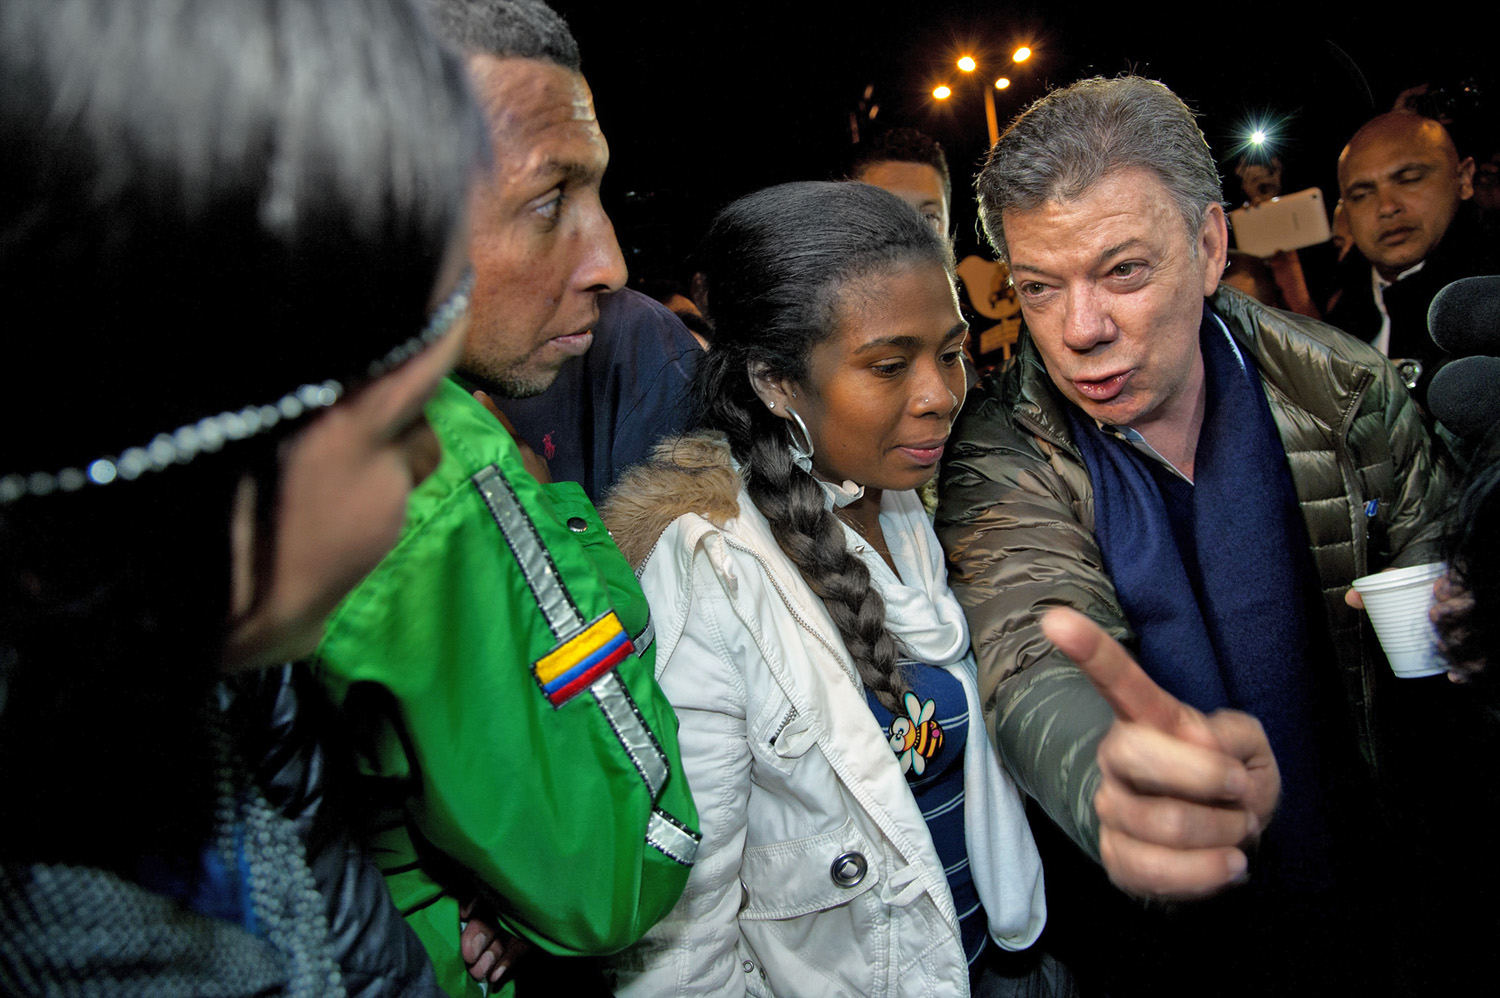 Trying to hold on, Colombia's President Juan Manuel Santos talks to voters at a campaign rally in the capital, Bogotá